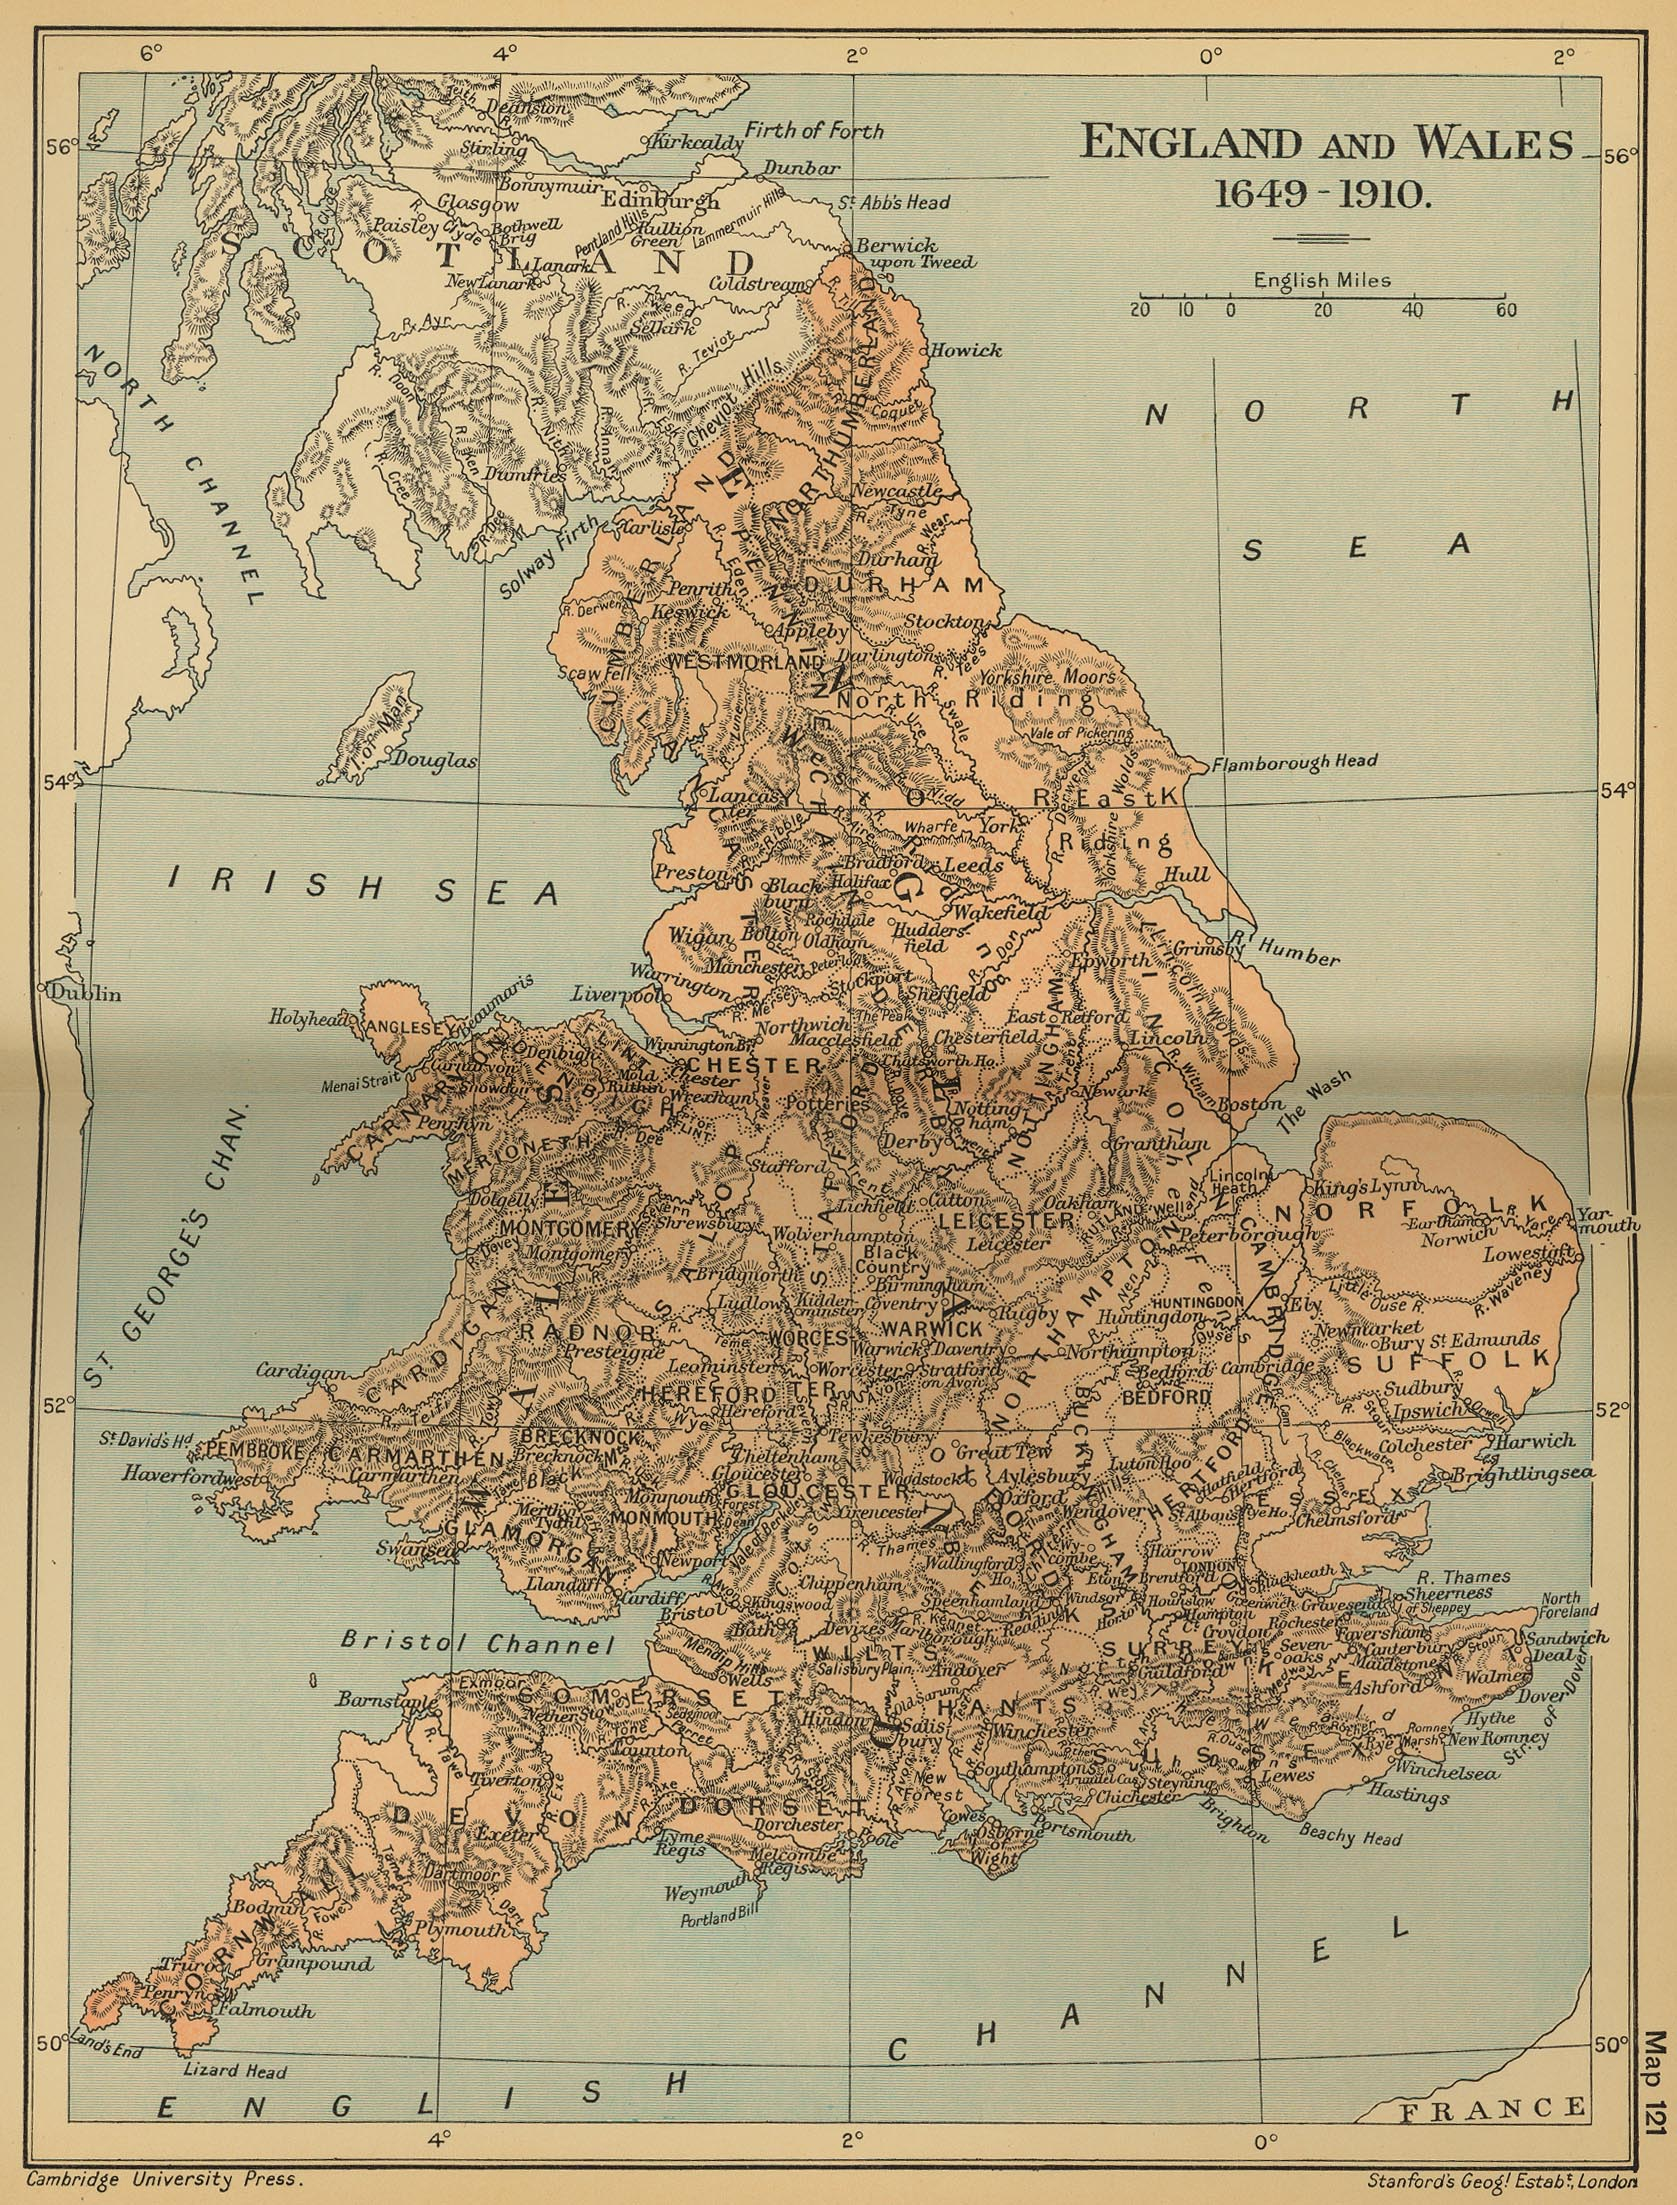 Map Of England And Wales.Map Of England And Wales 1649 1910